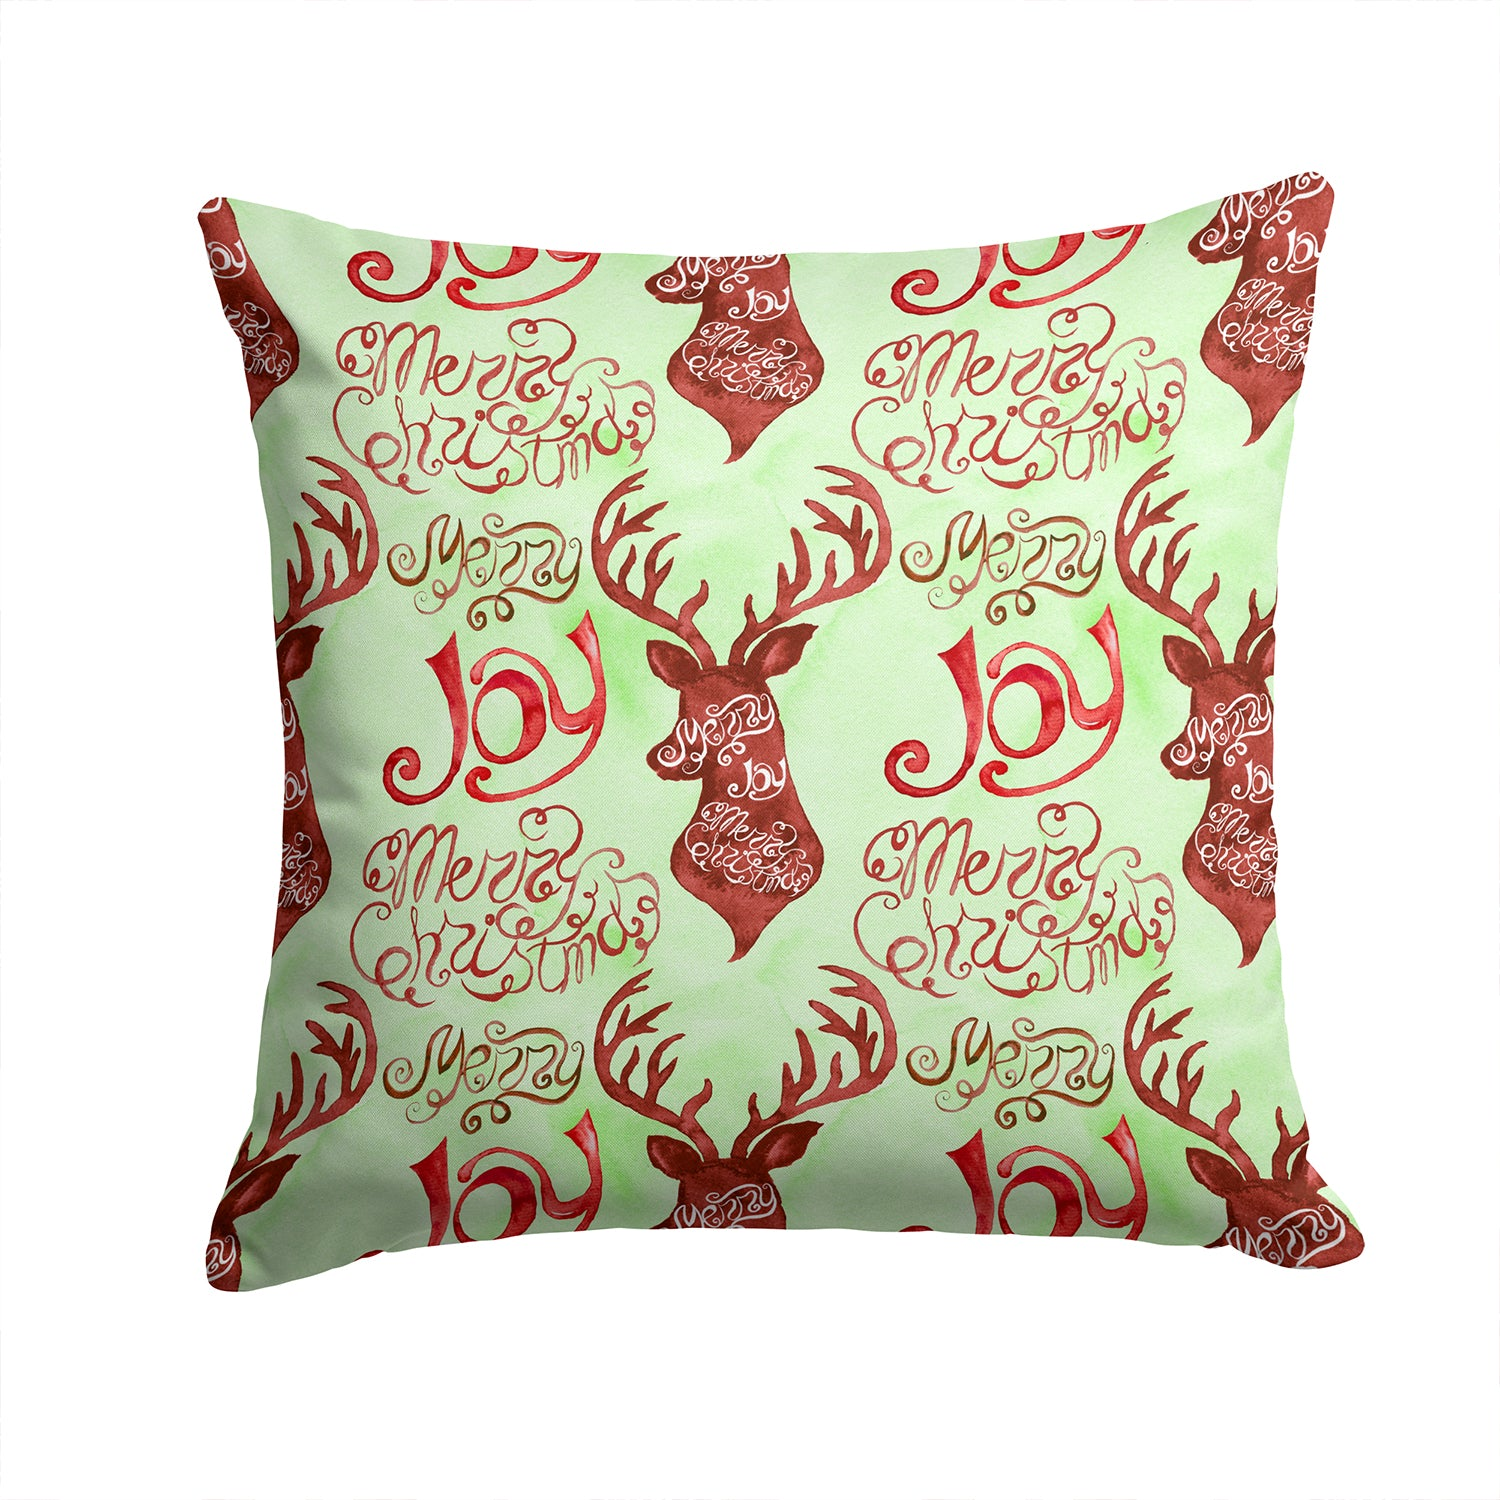 Merry Christmas Joy Reindeer Fabric Decorative Pillow BB7488PW1414 by Caroline's Treasures